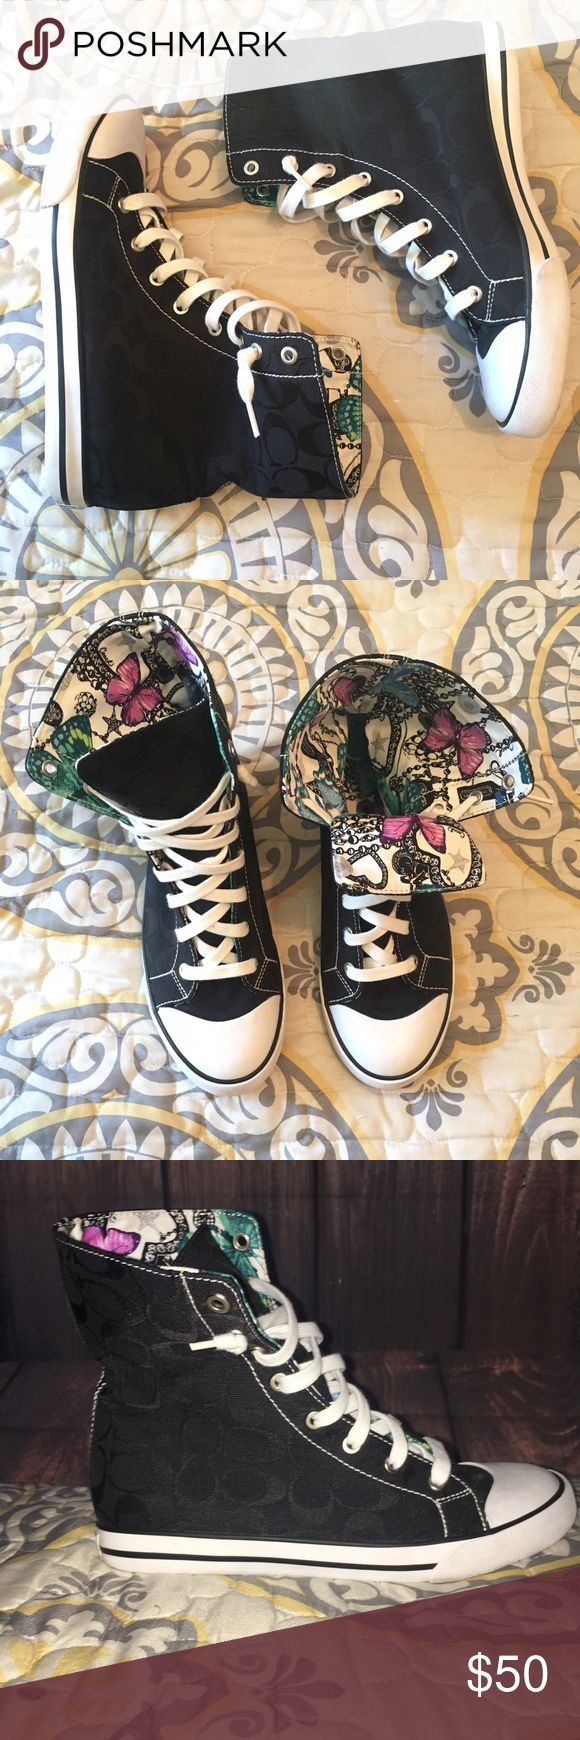 Coach Bonnie High Top Sneakers Like NEW Black High Top COACH Bonnie Sneakers With butterfly silk Pattern inside to flip out the tongue ! I've only wore them about 2 to 3 times ! My feet are too wide for them ! They belong to a Fashionista to rock them !!💙 Price is Firm🌍 Coach Shoes Sneakers